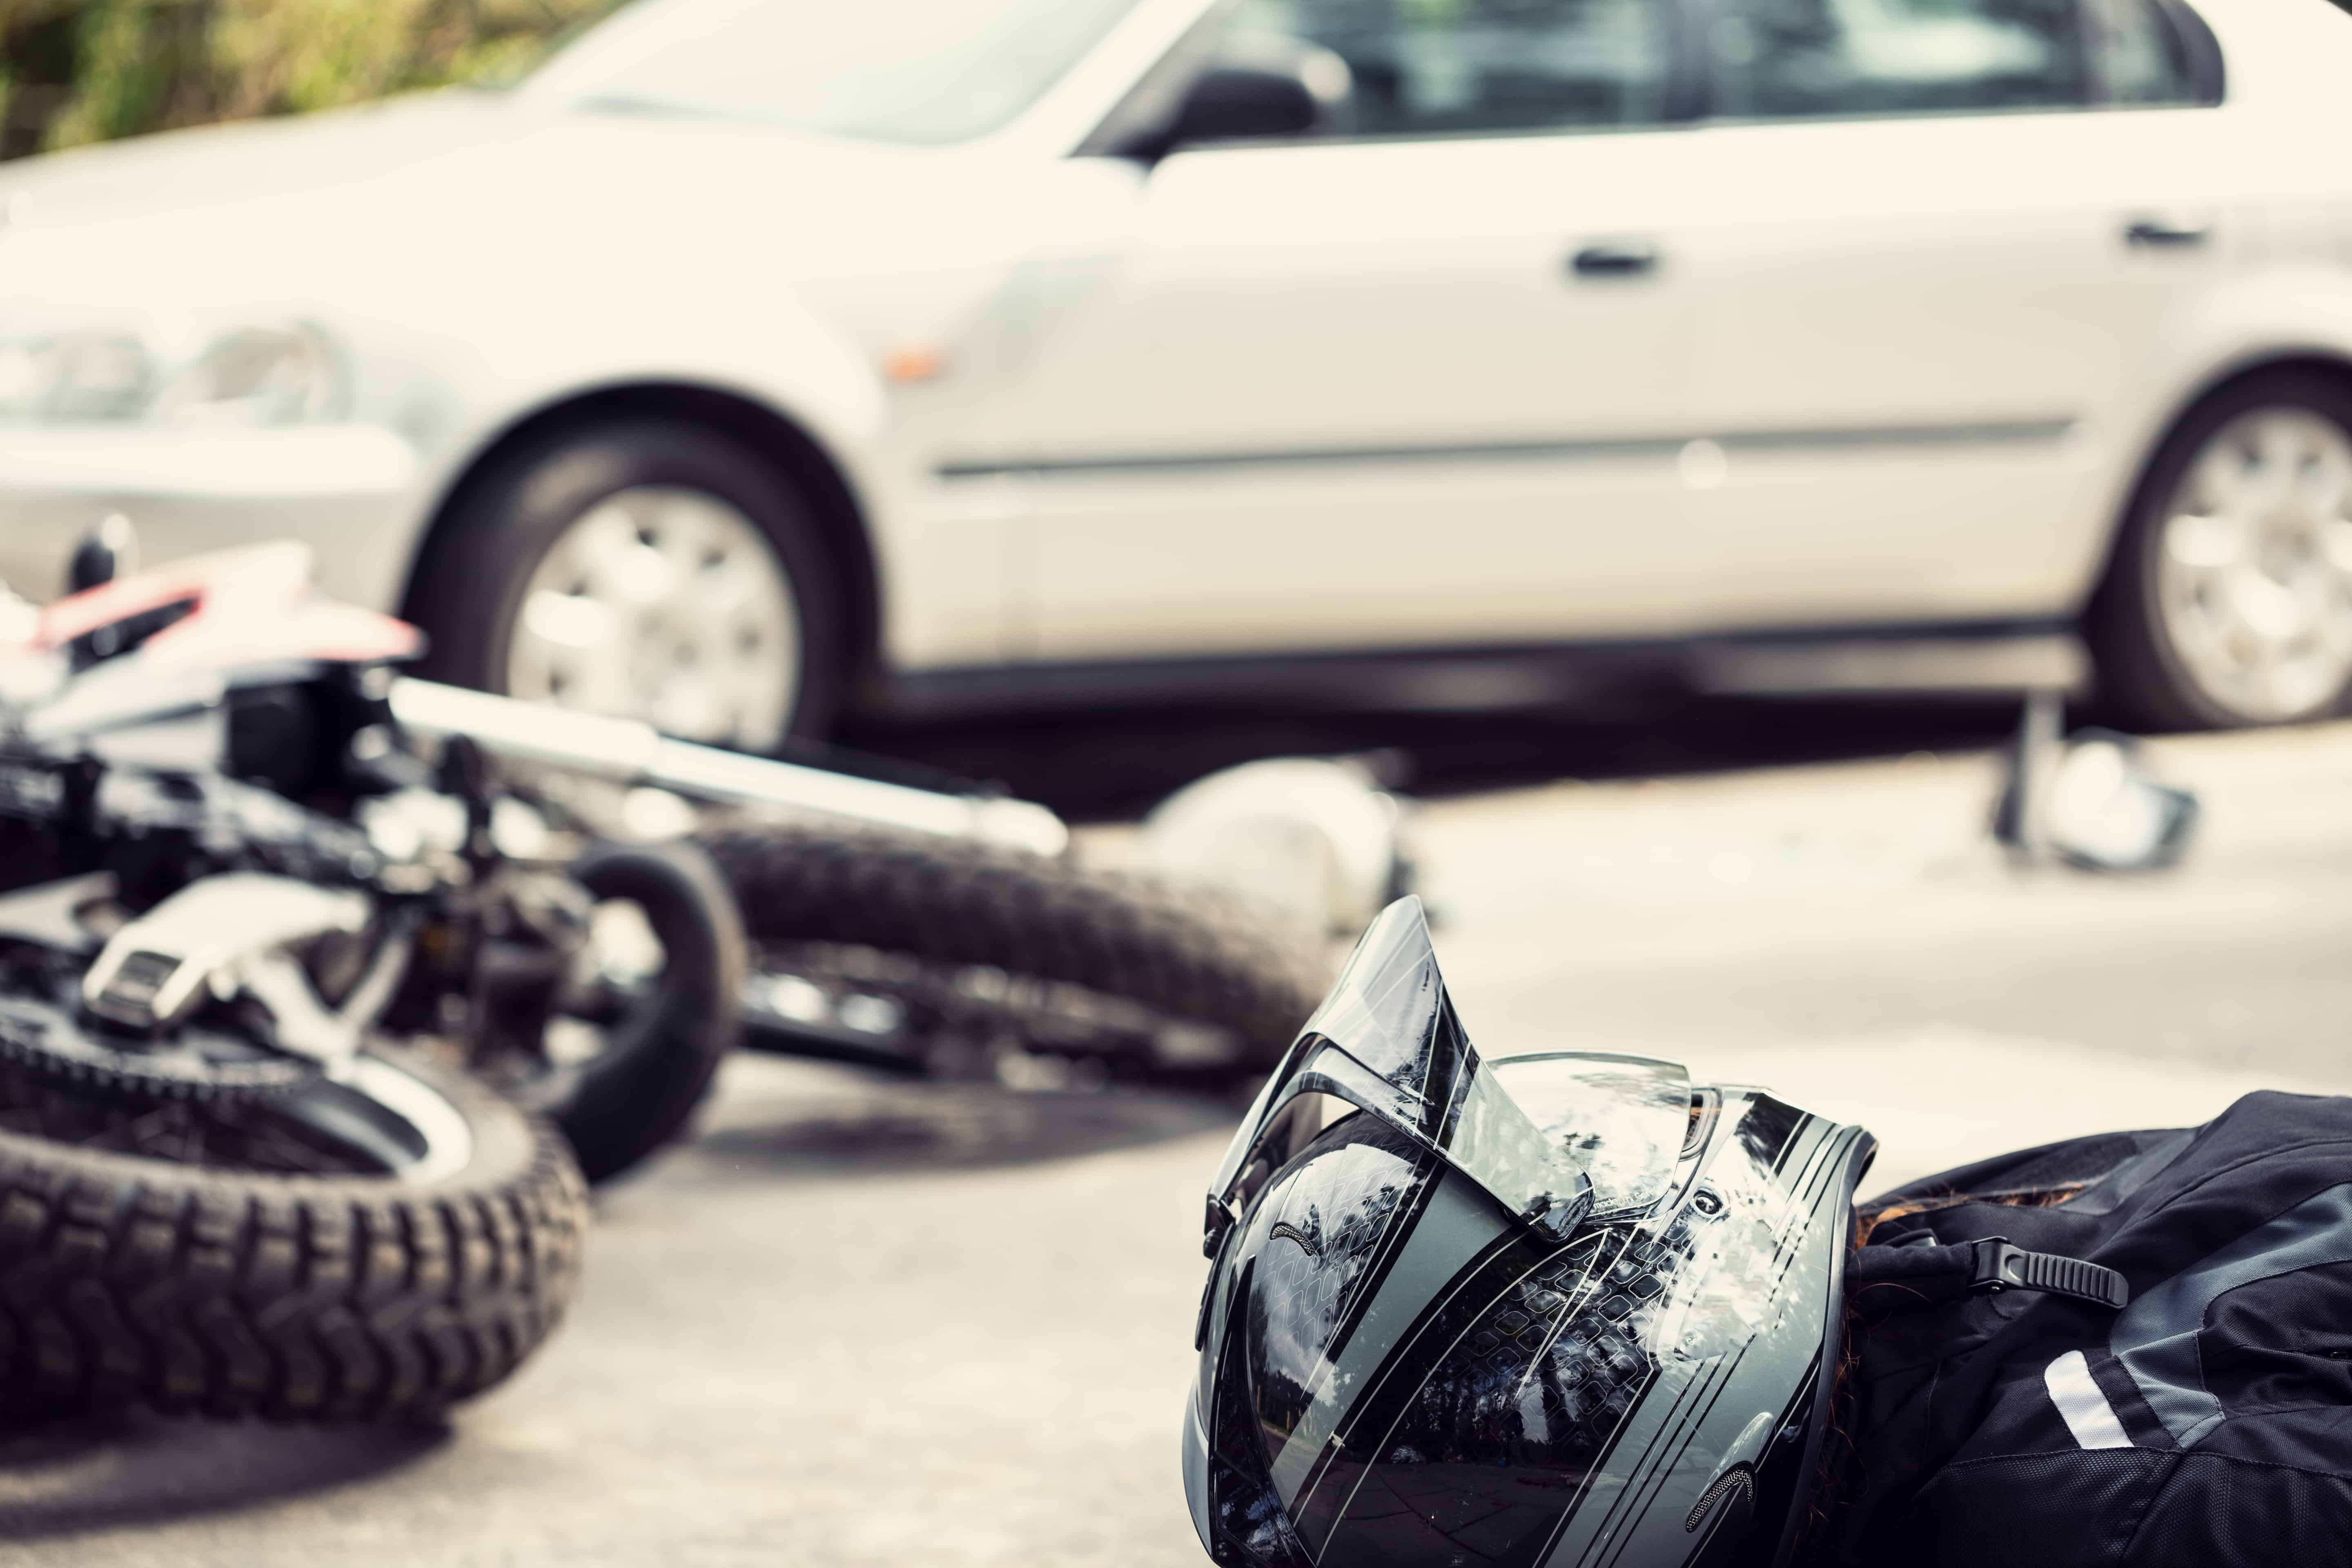 1 Person Injured in Motorcycle Crash on Highway 101 and Robinson Road [Humboldt County, CA]